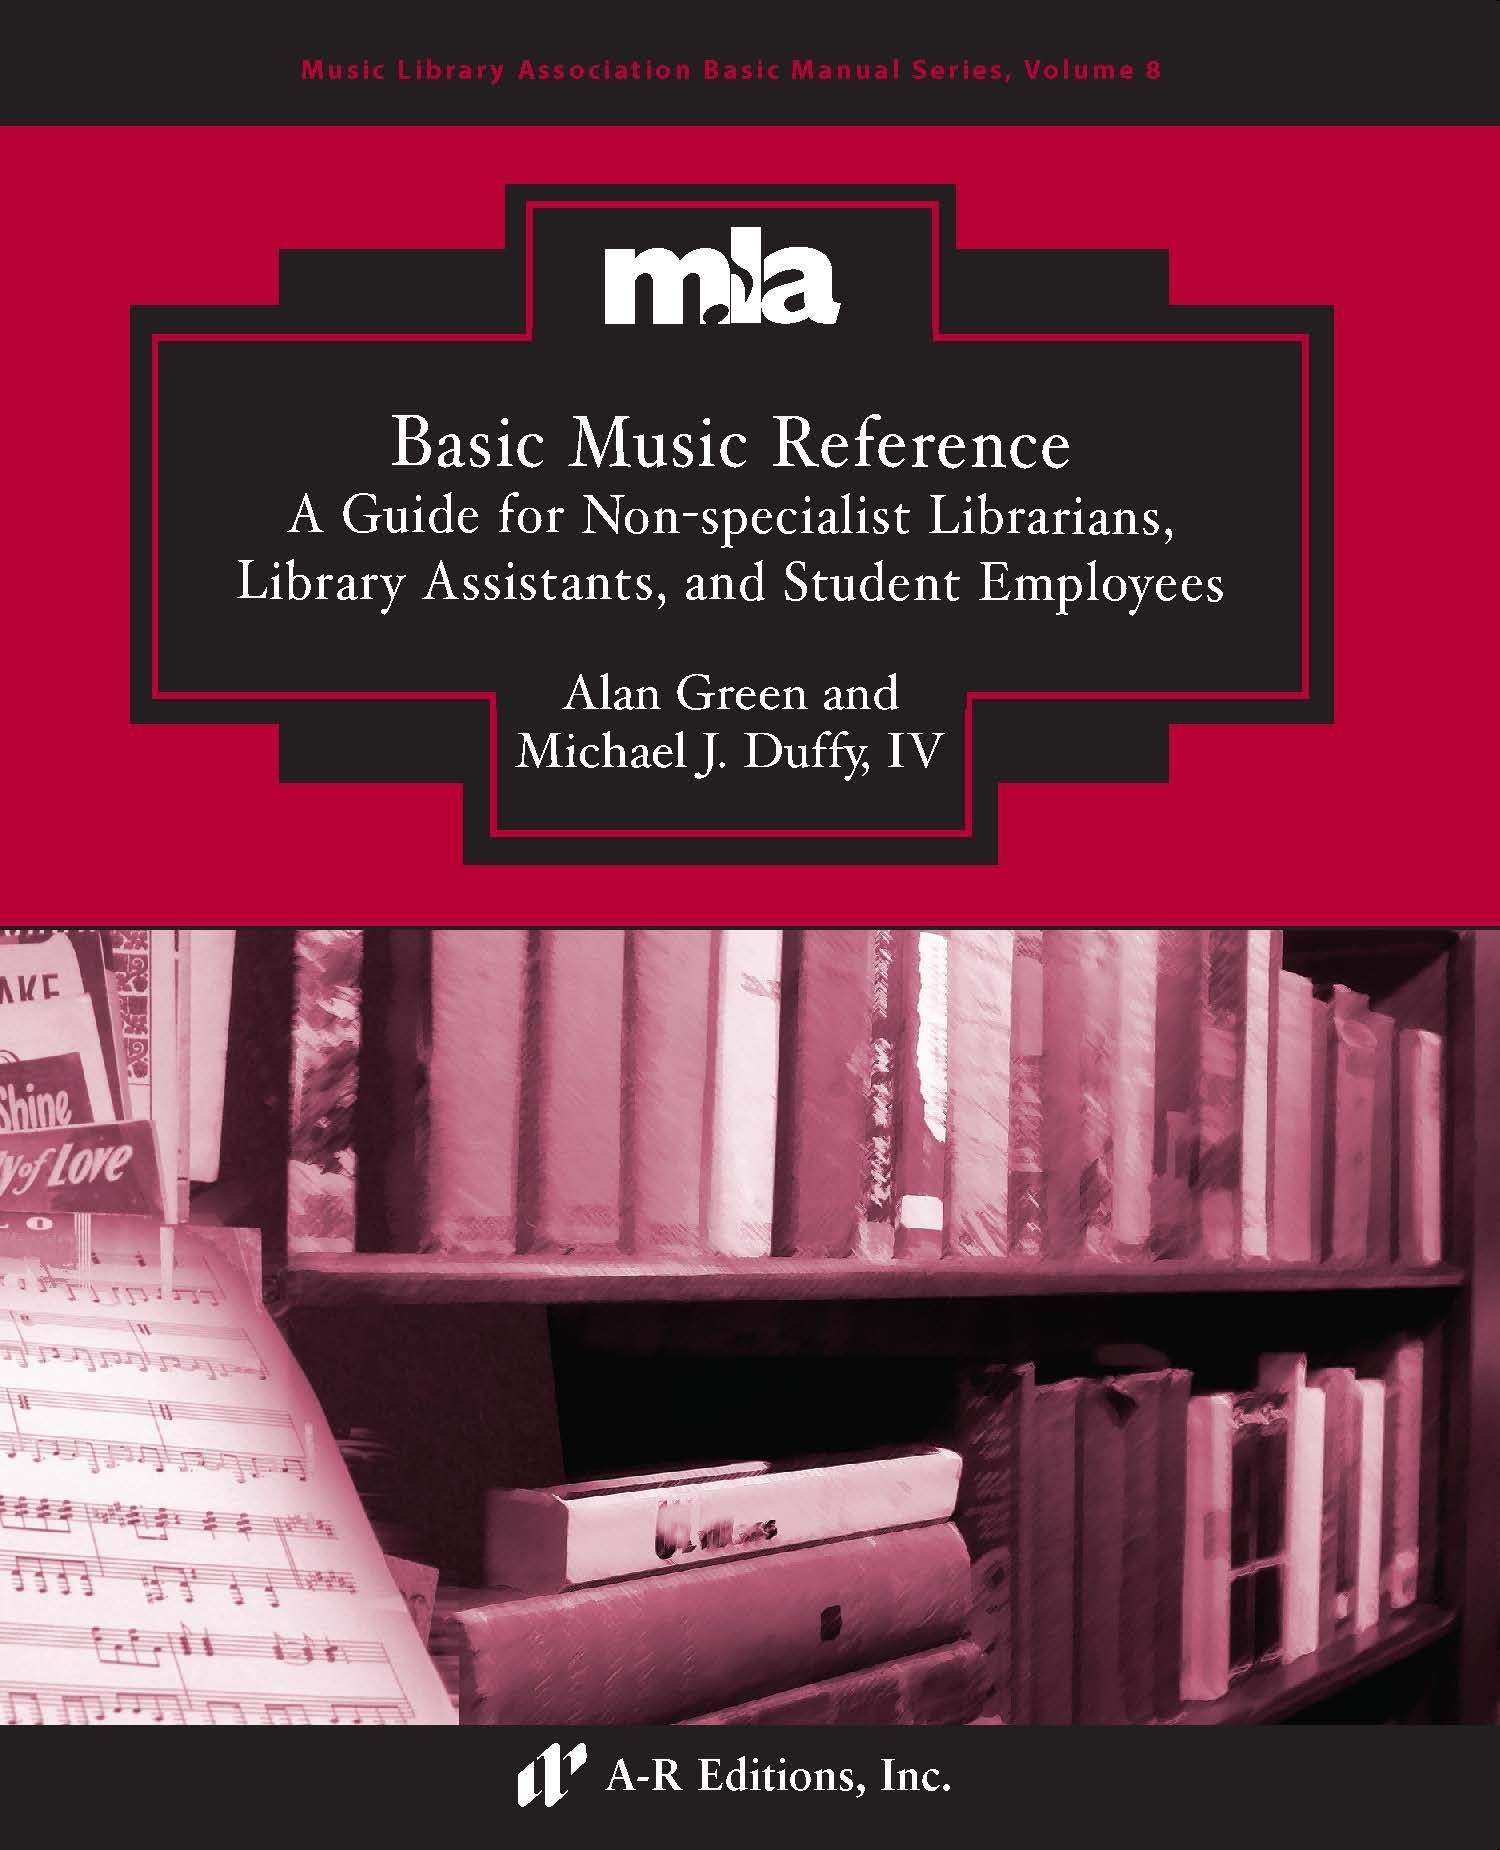 Green: Basic Music Reference